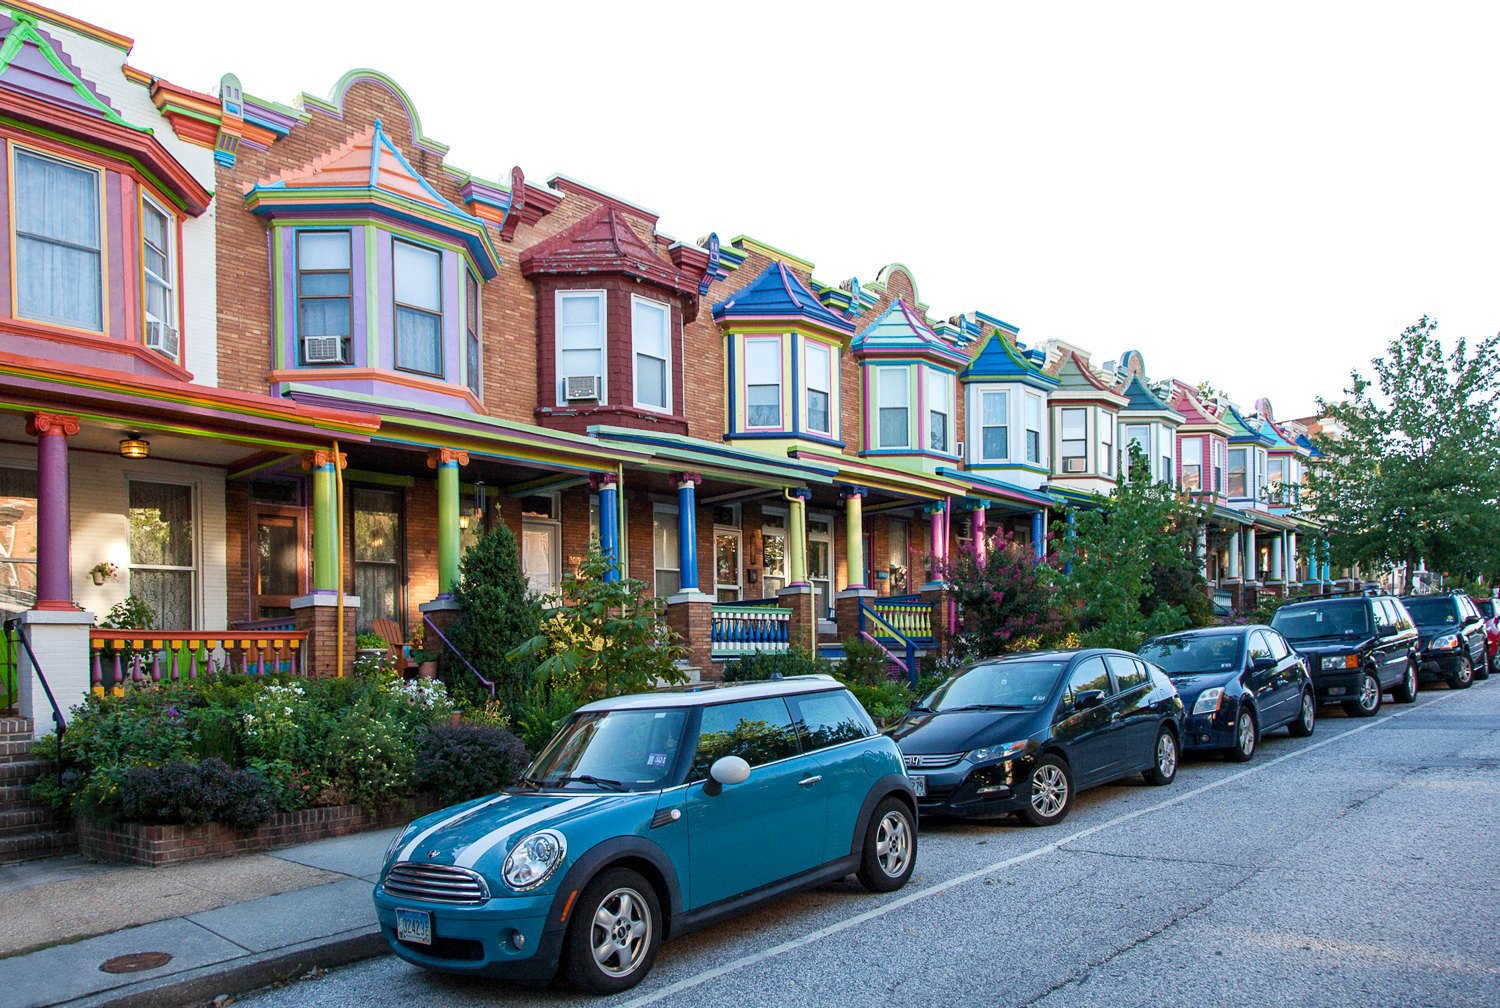 Where a 1997 Lonely Planet guide will take you today in Baltimore. Image 7.